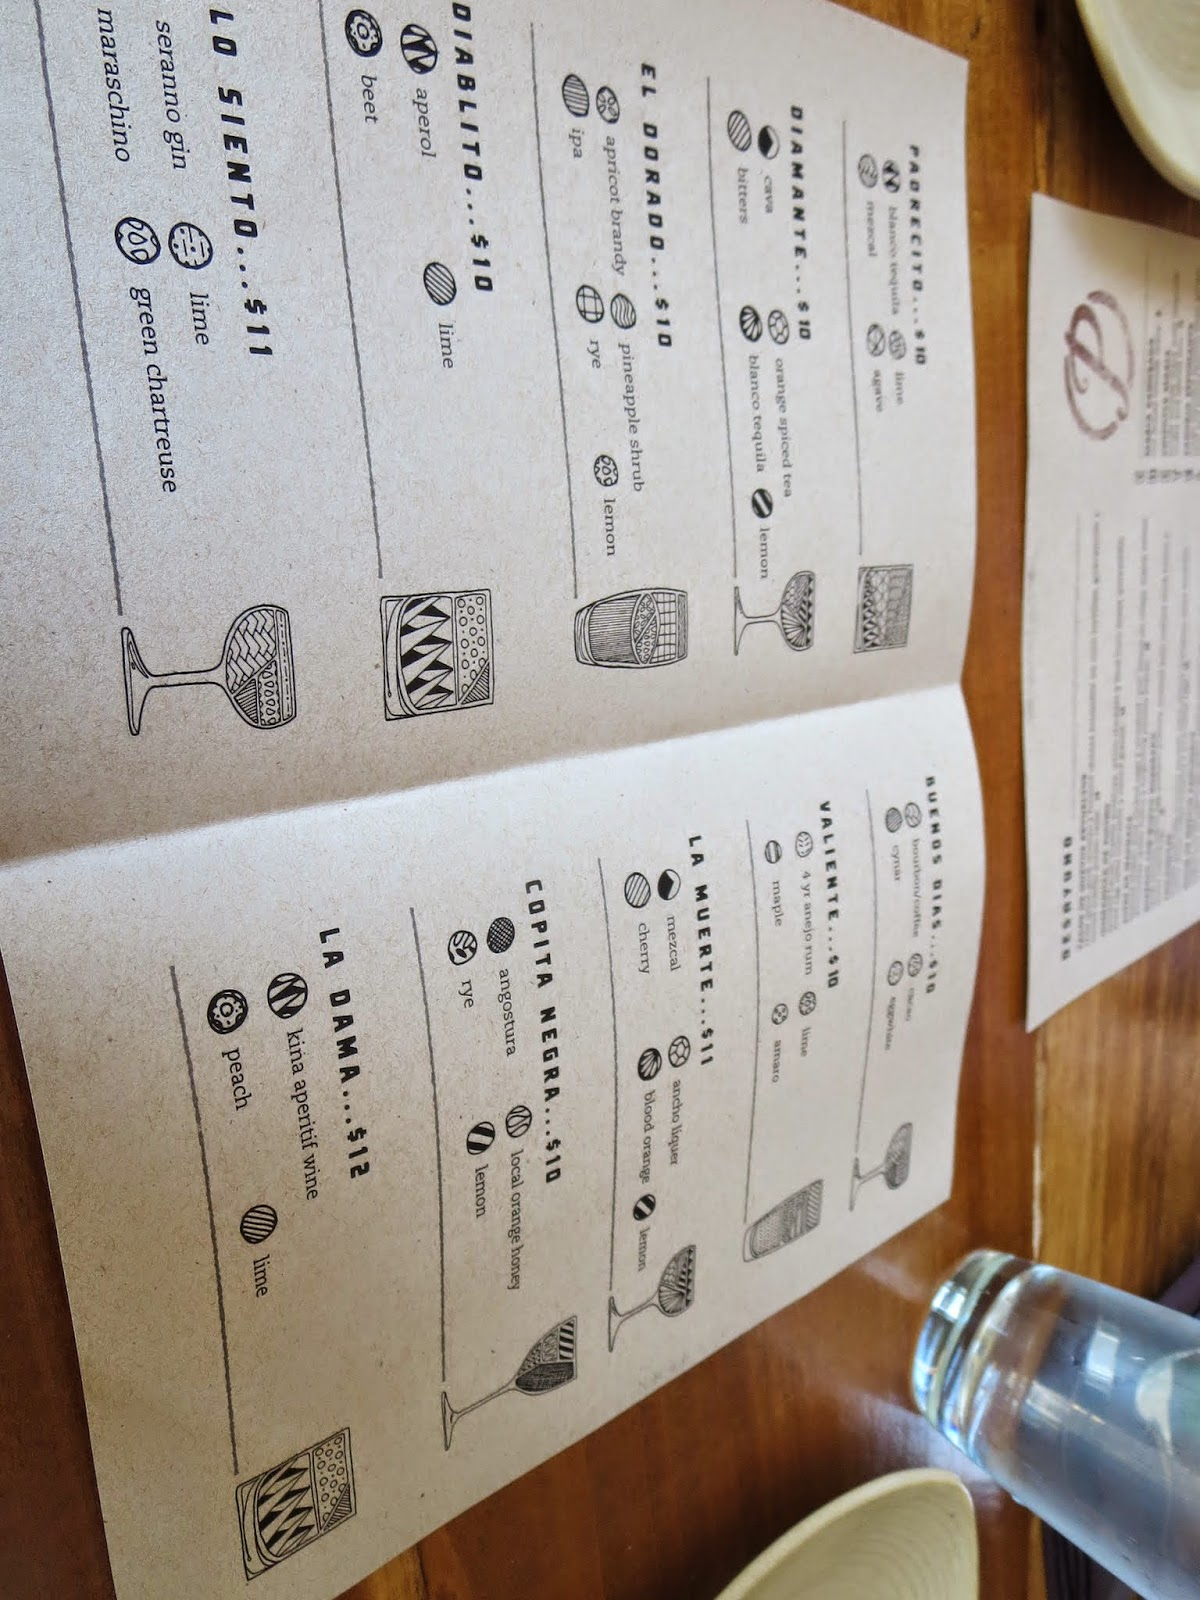 Cocktail menu at Padrecito